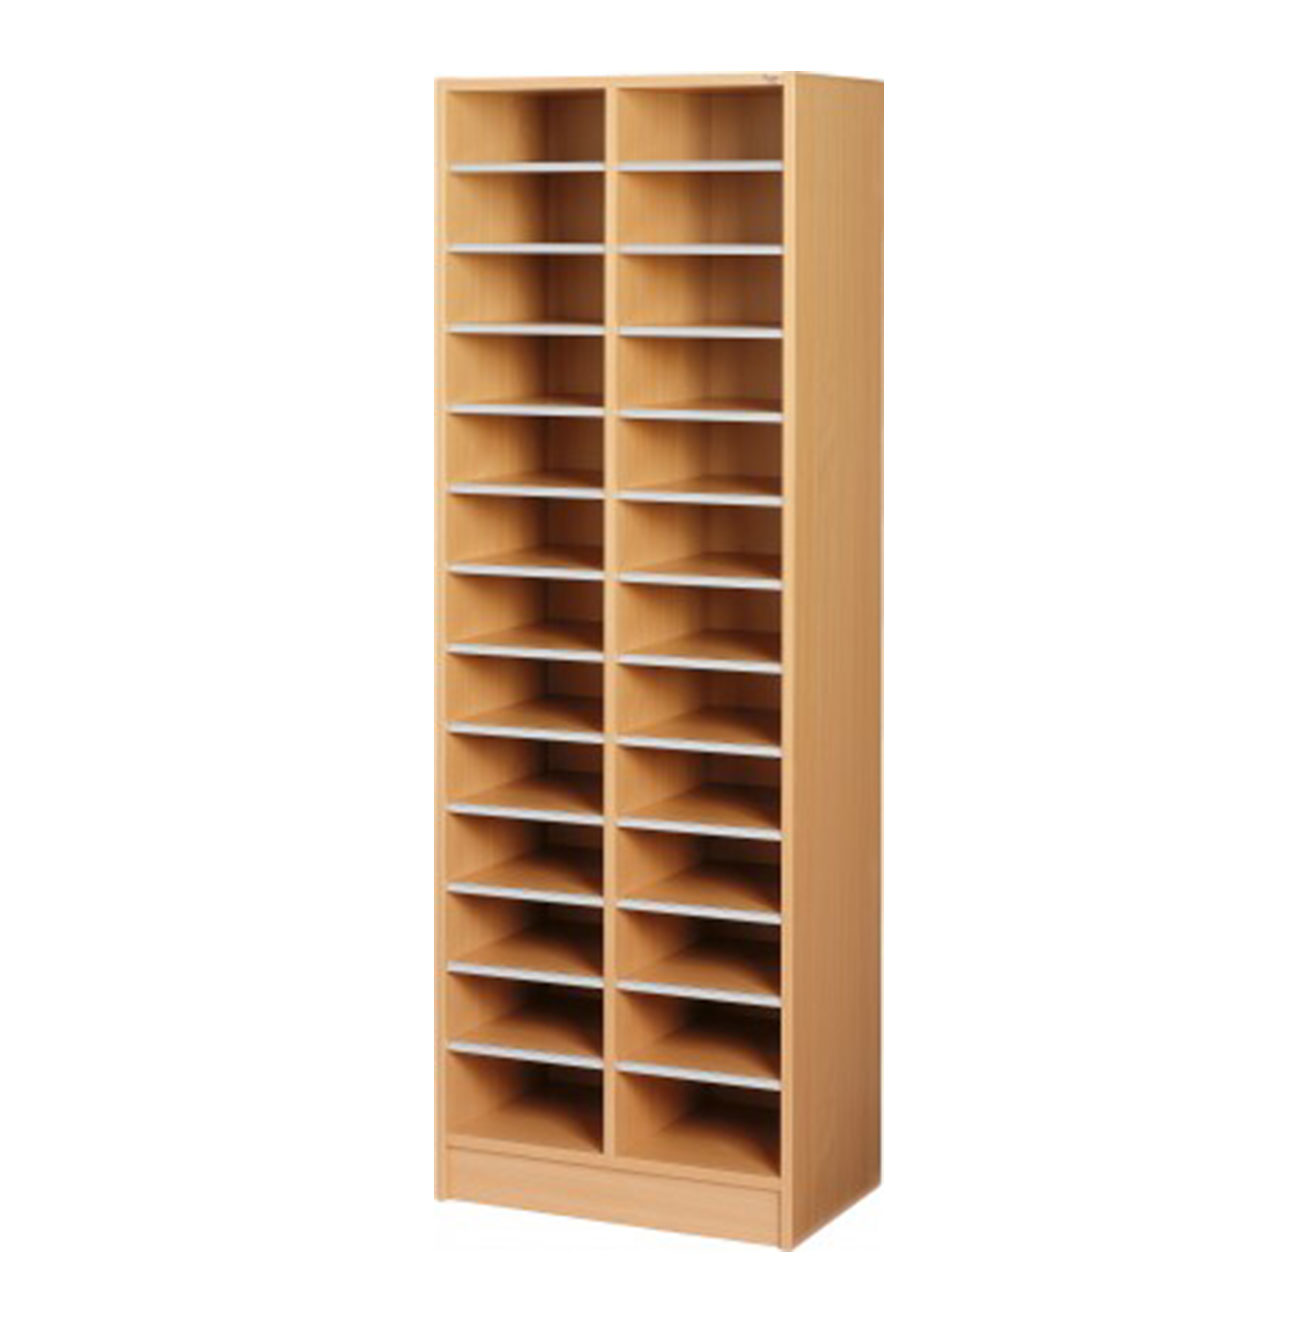 Double Pigeon Hole Cabinet - Beech